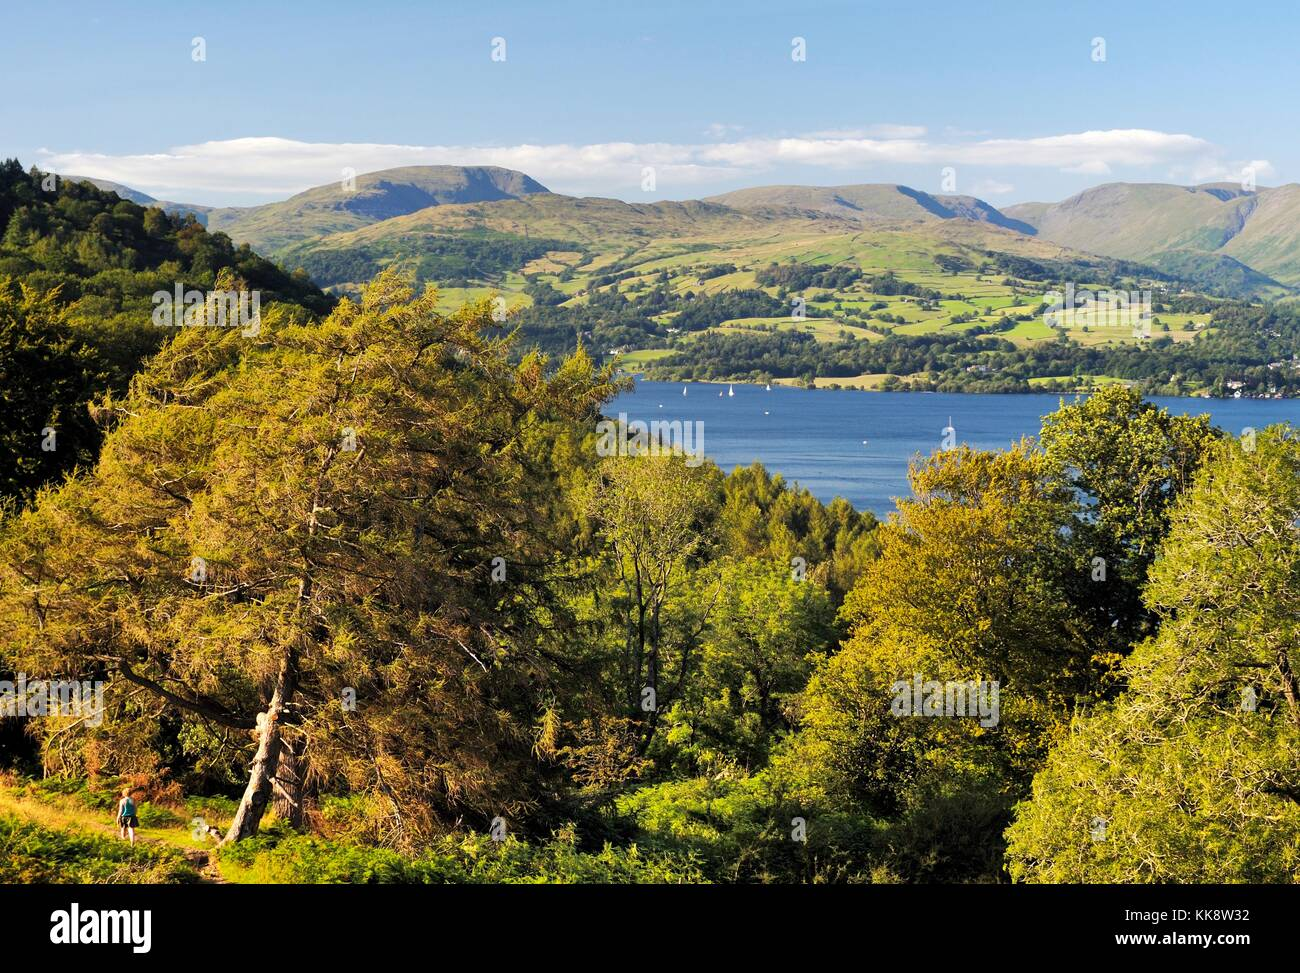 Lake District National Park, Cumbria, England. Looking N. to the Troutbeck fells. Woman walks along woodland path - Stock Image